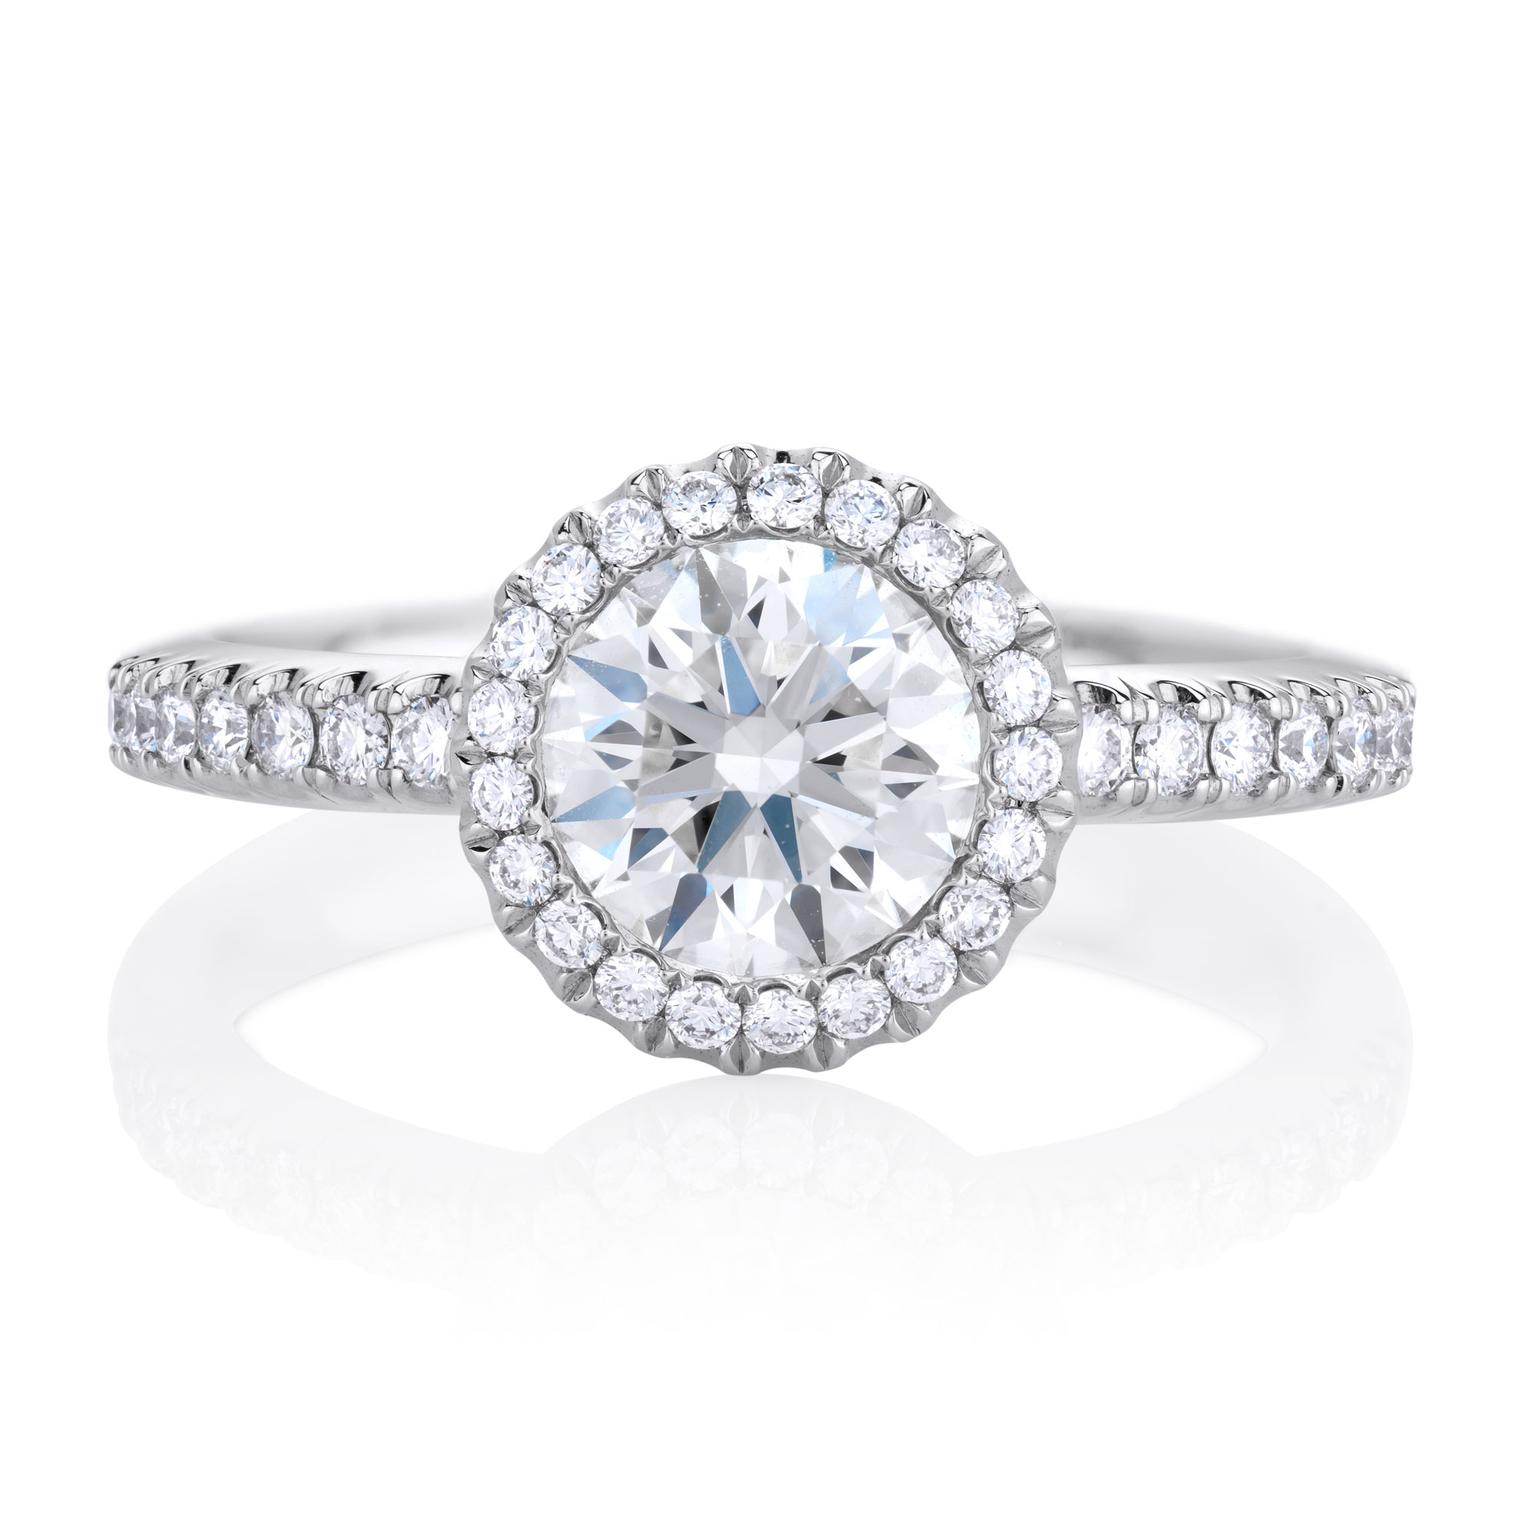 Aura 1ct diamond engagement ring in platinum | De Beers | The ...